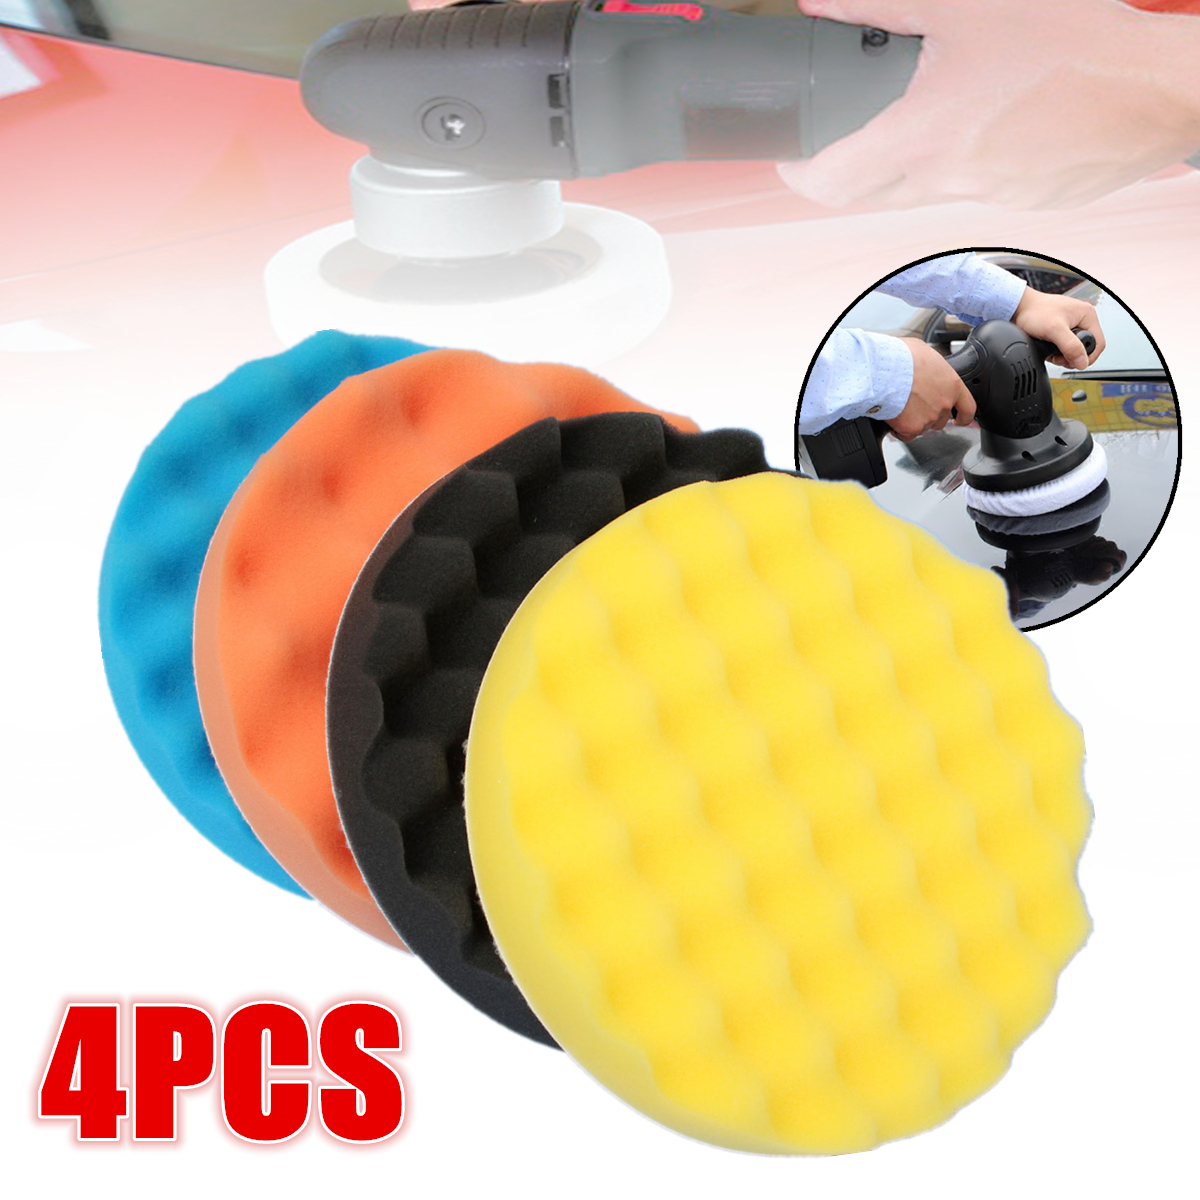 4Pcs 7''/180mm Sponge Foam Buffing Pad Waffle Polishing Buffer Pad Kit For Car Auto Polisher